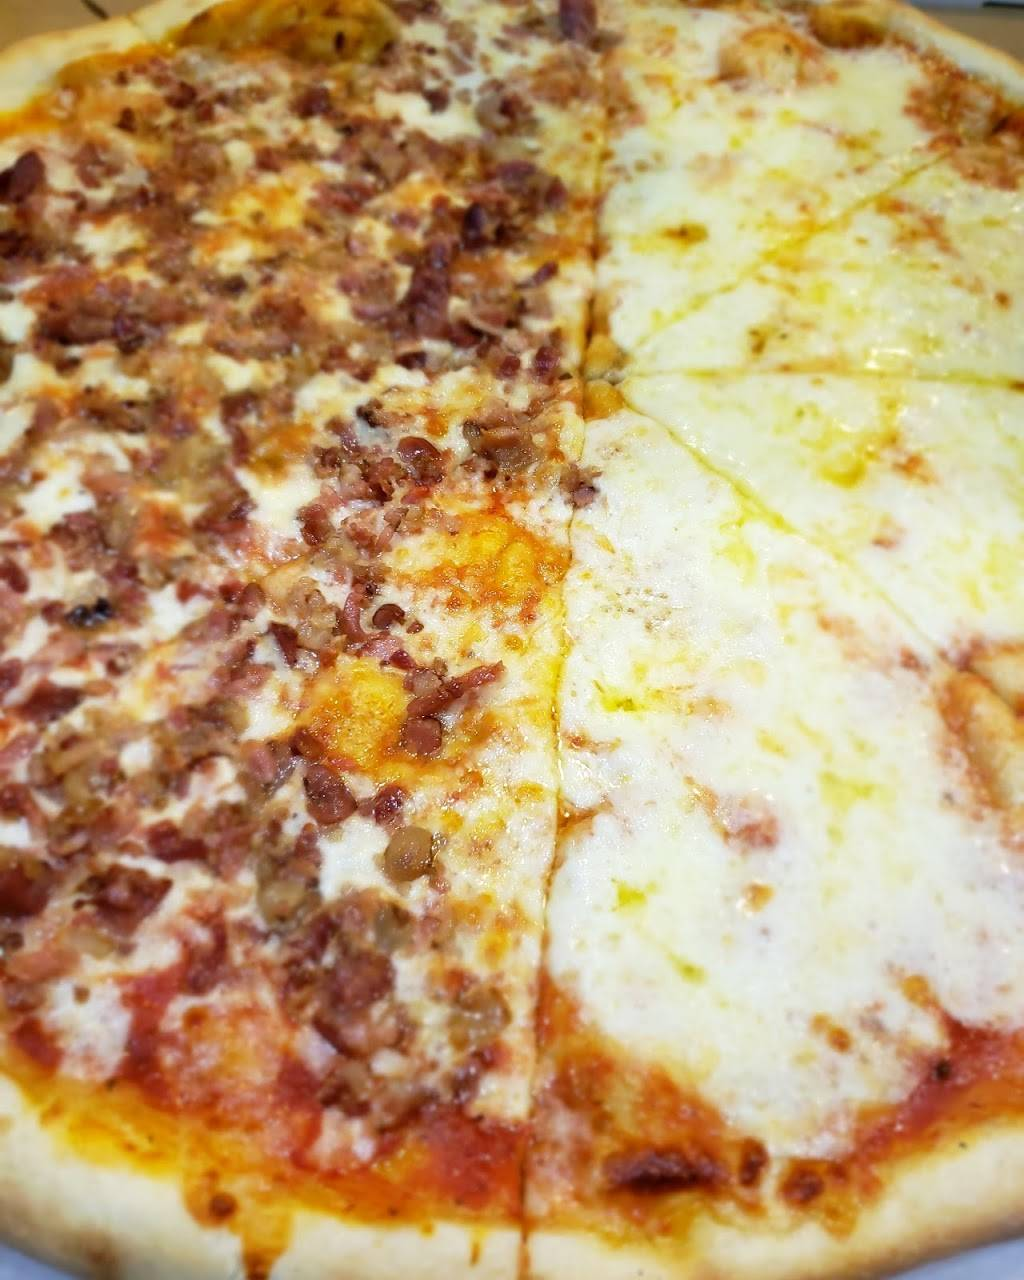 Lauras Pizza   meal delivery   3073 Bailey Ave, Bronx, NY 10463, USA   7184321313 OR +1 718-432-1313